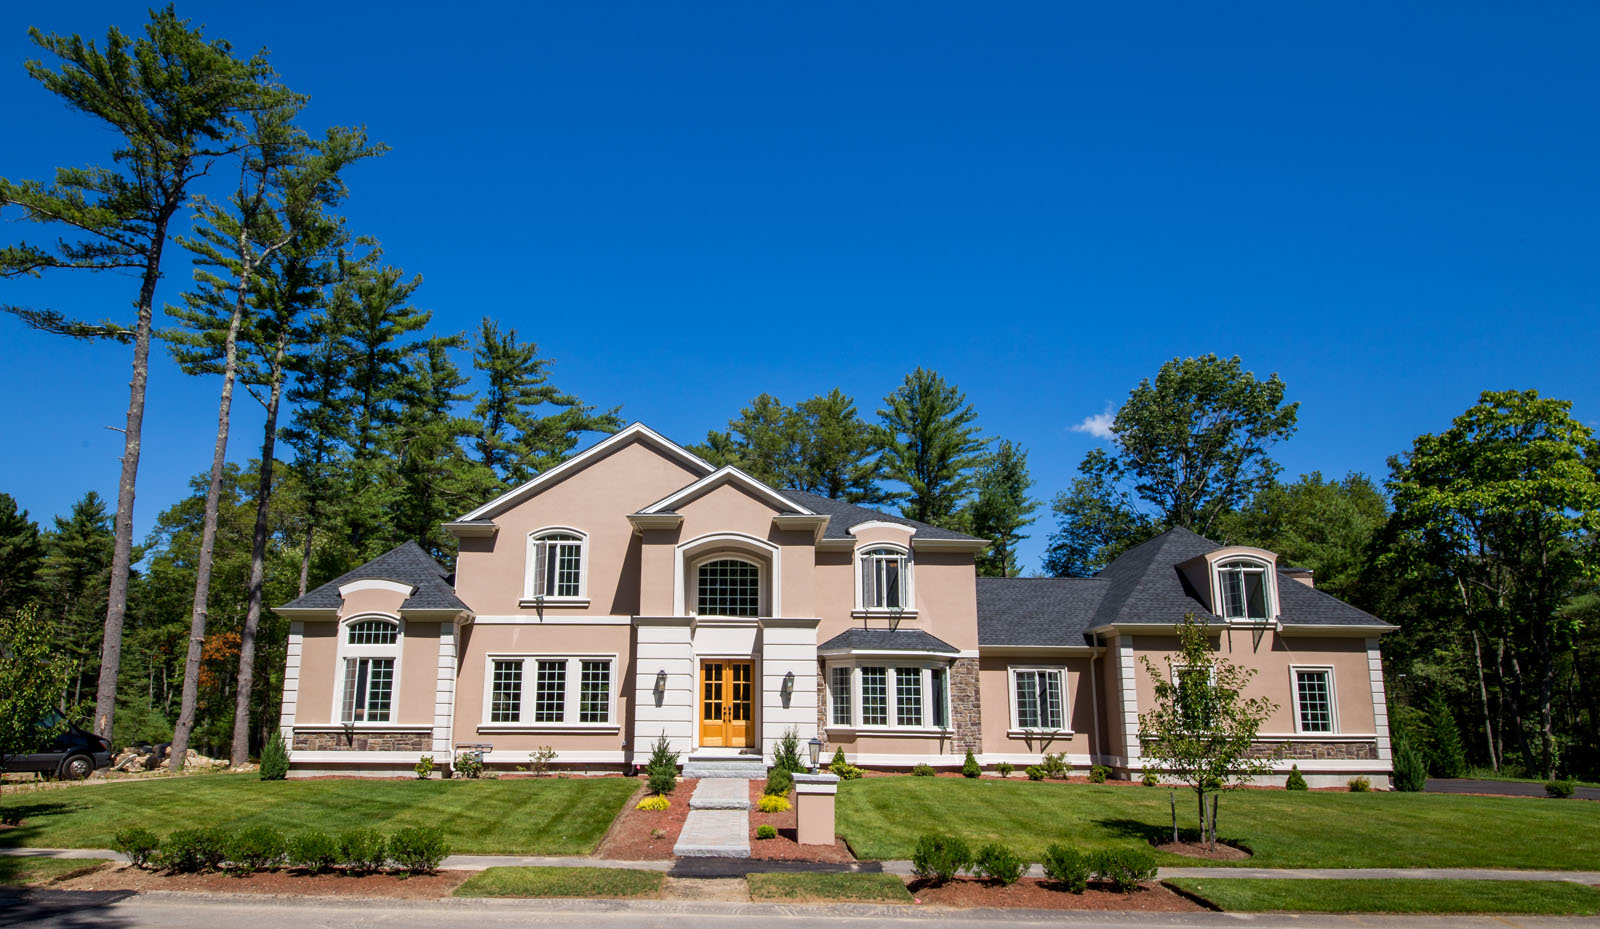 Diamond builders luxury colonial custom homes in new for Home builders in ma